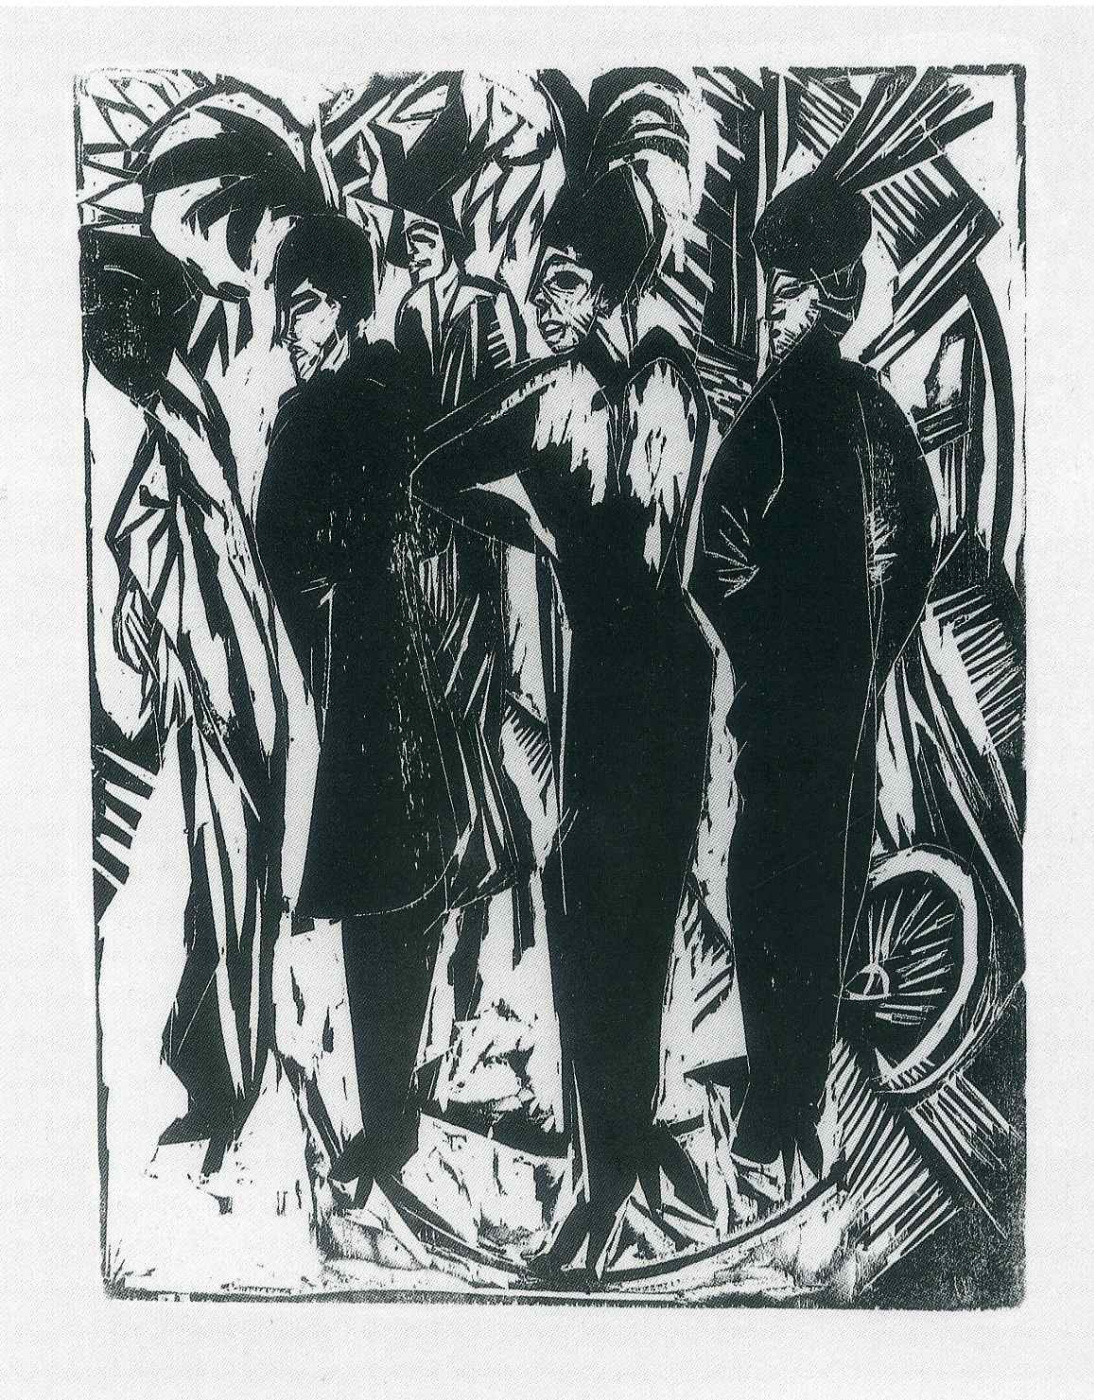 Ernst Ludwig Kirchner. Five women on the street